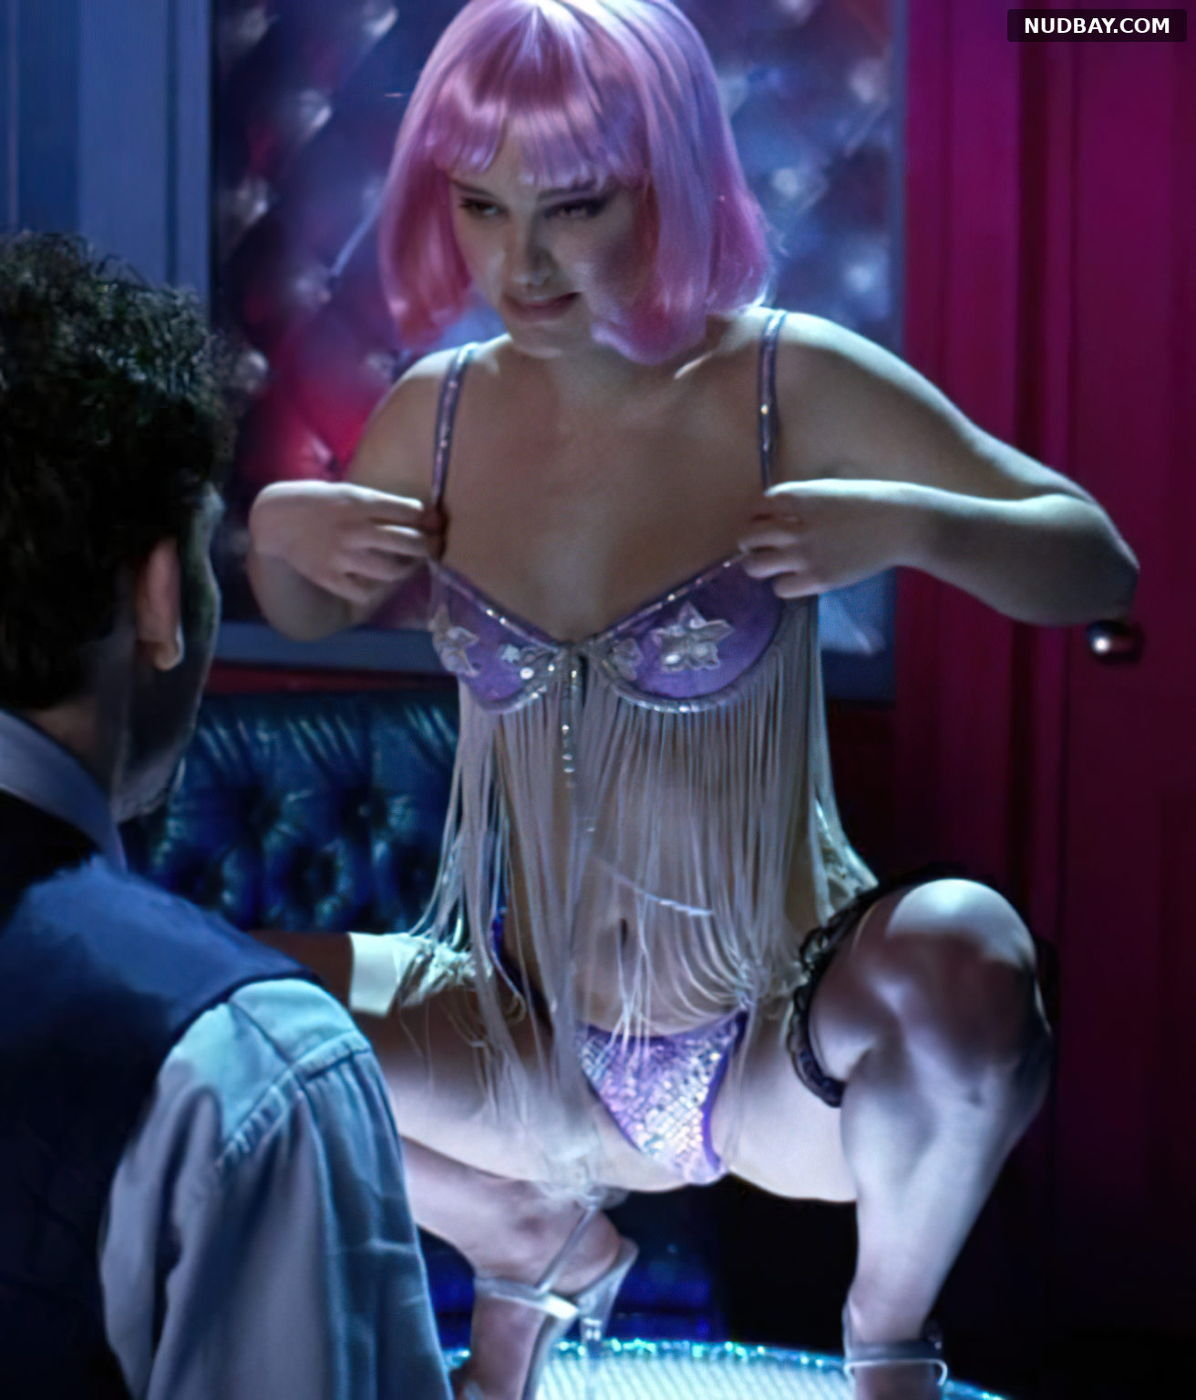 Natalie Portman nude pussy in the movie Closer 2004